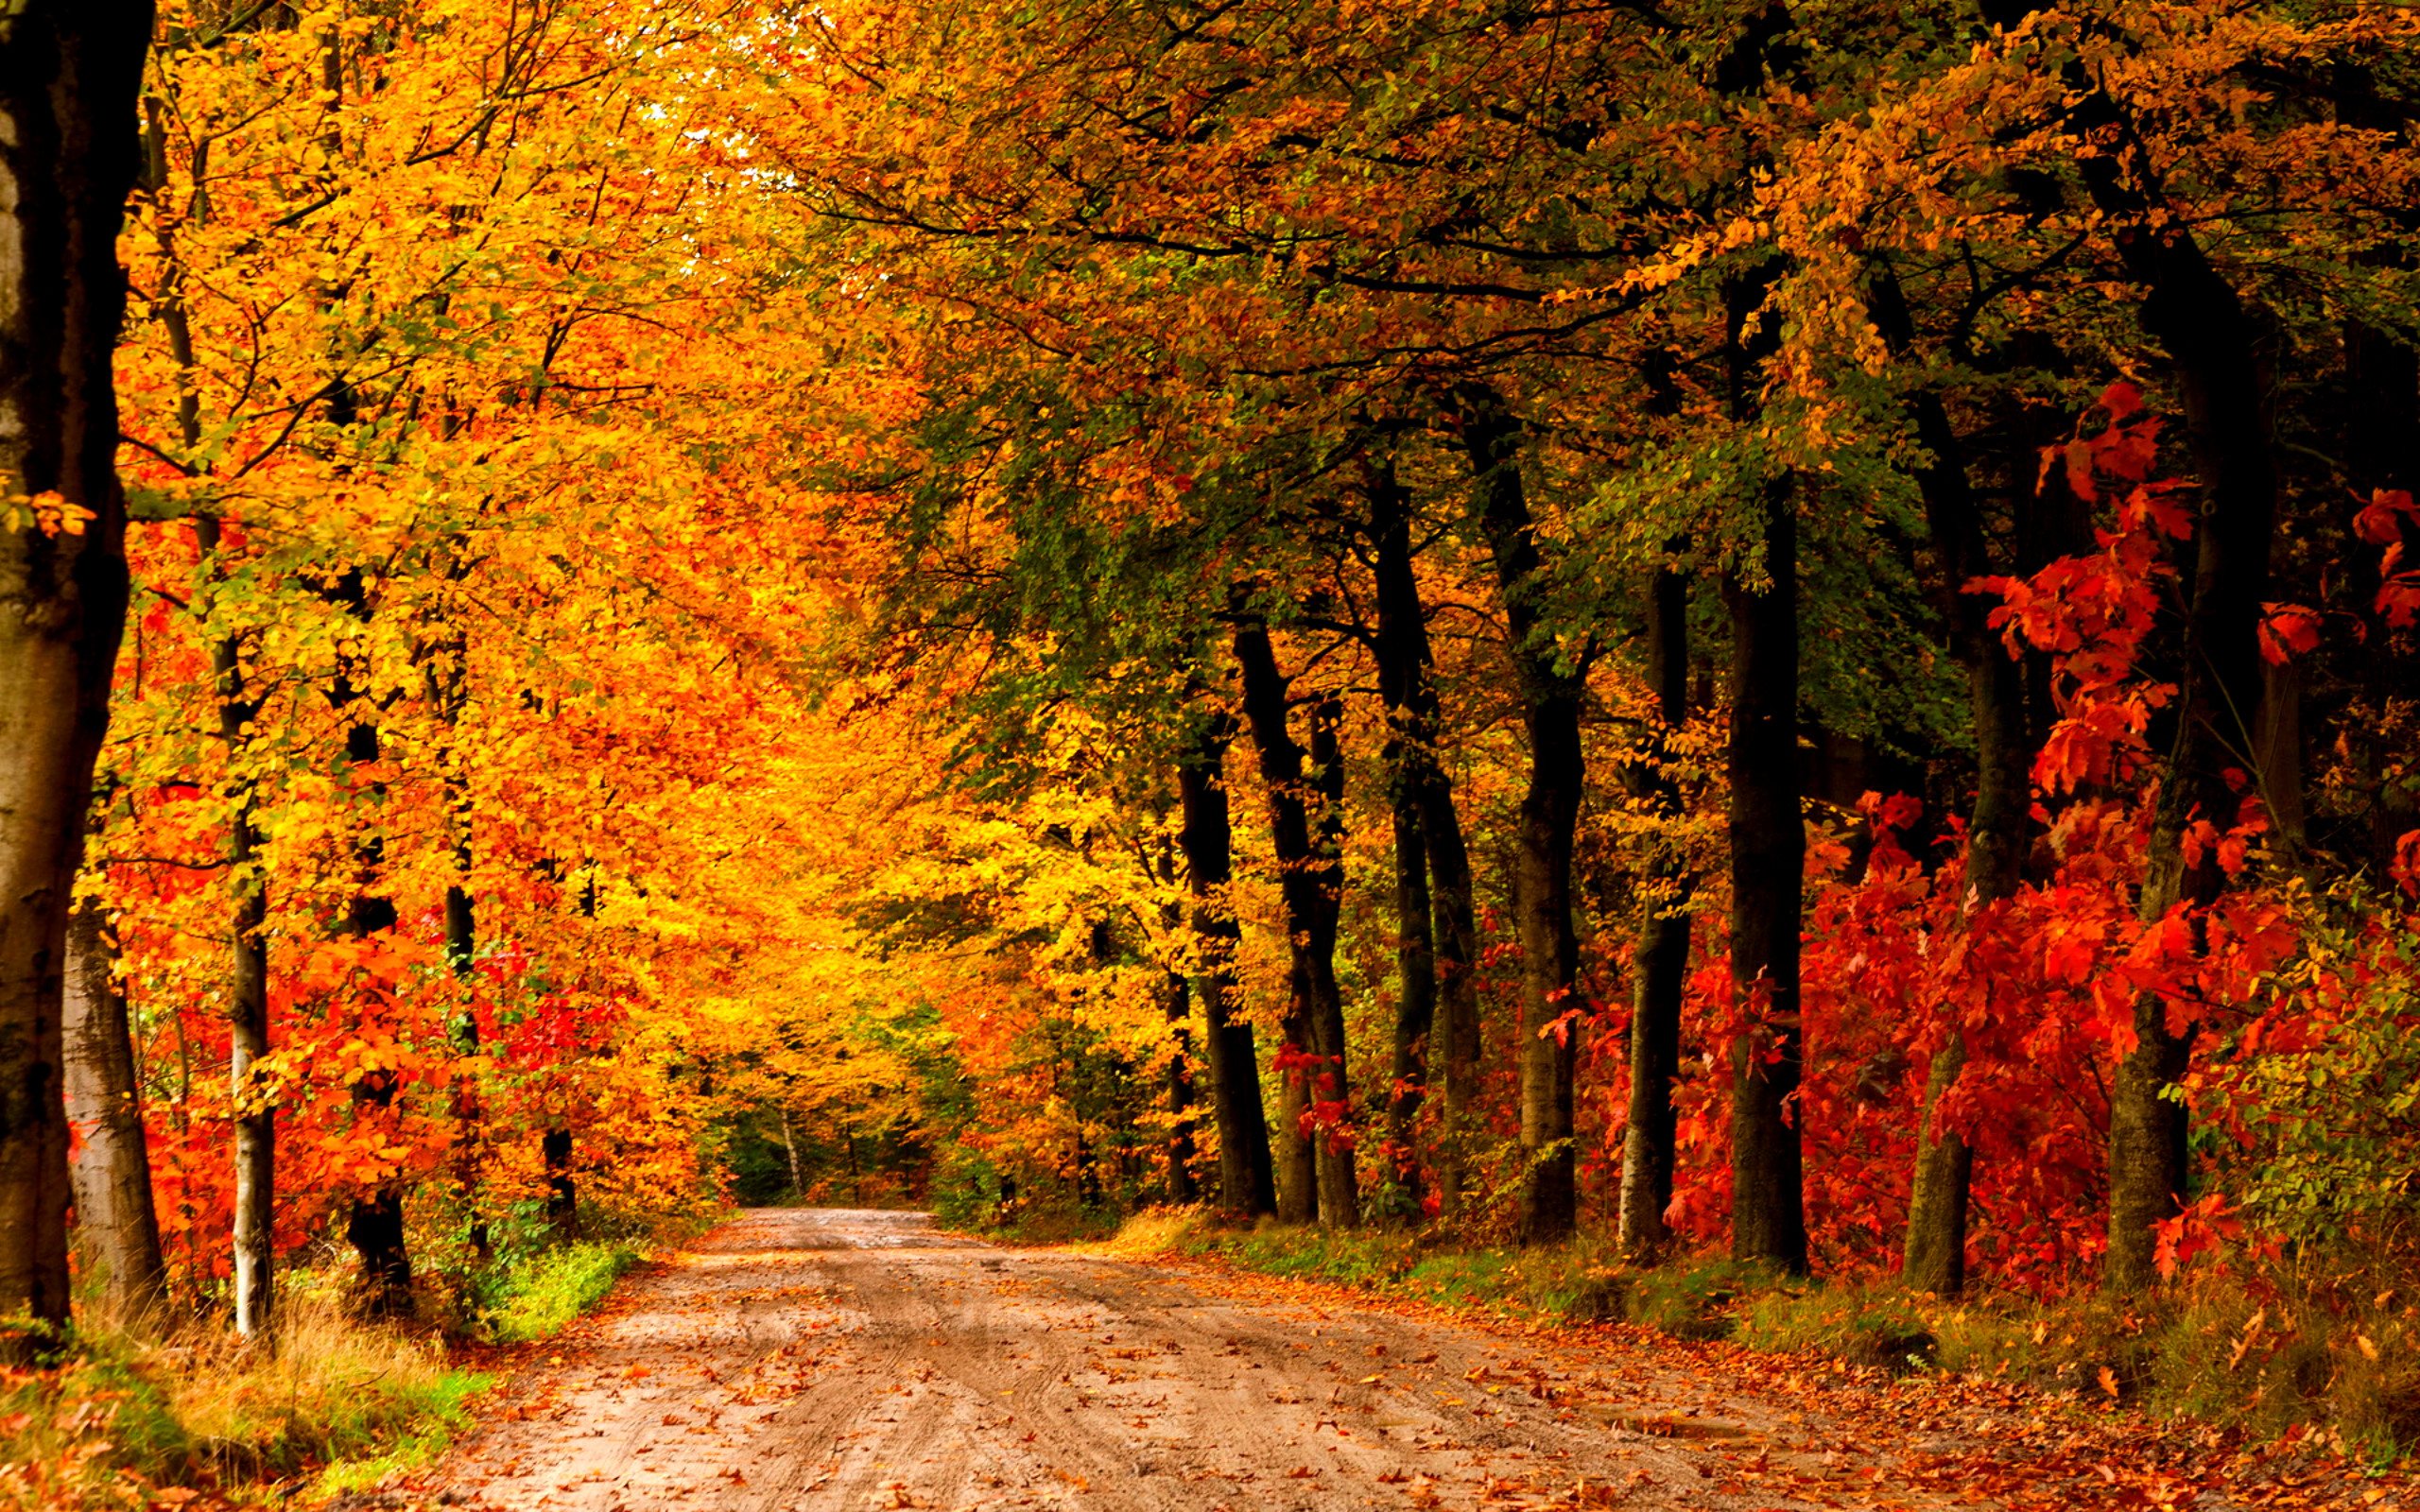 Autumn Season Countryside Road Wallpapers